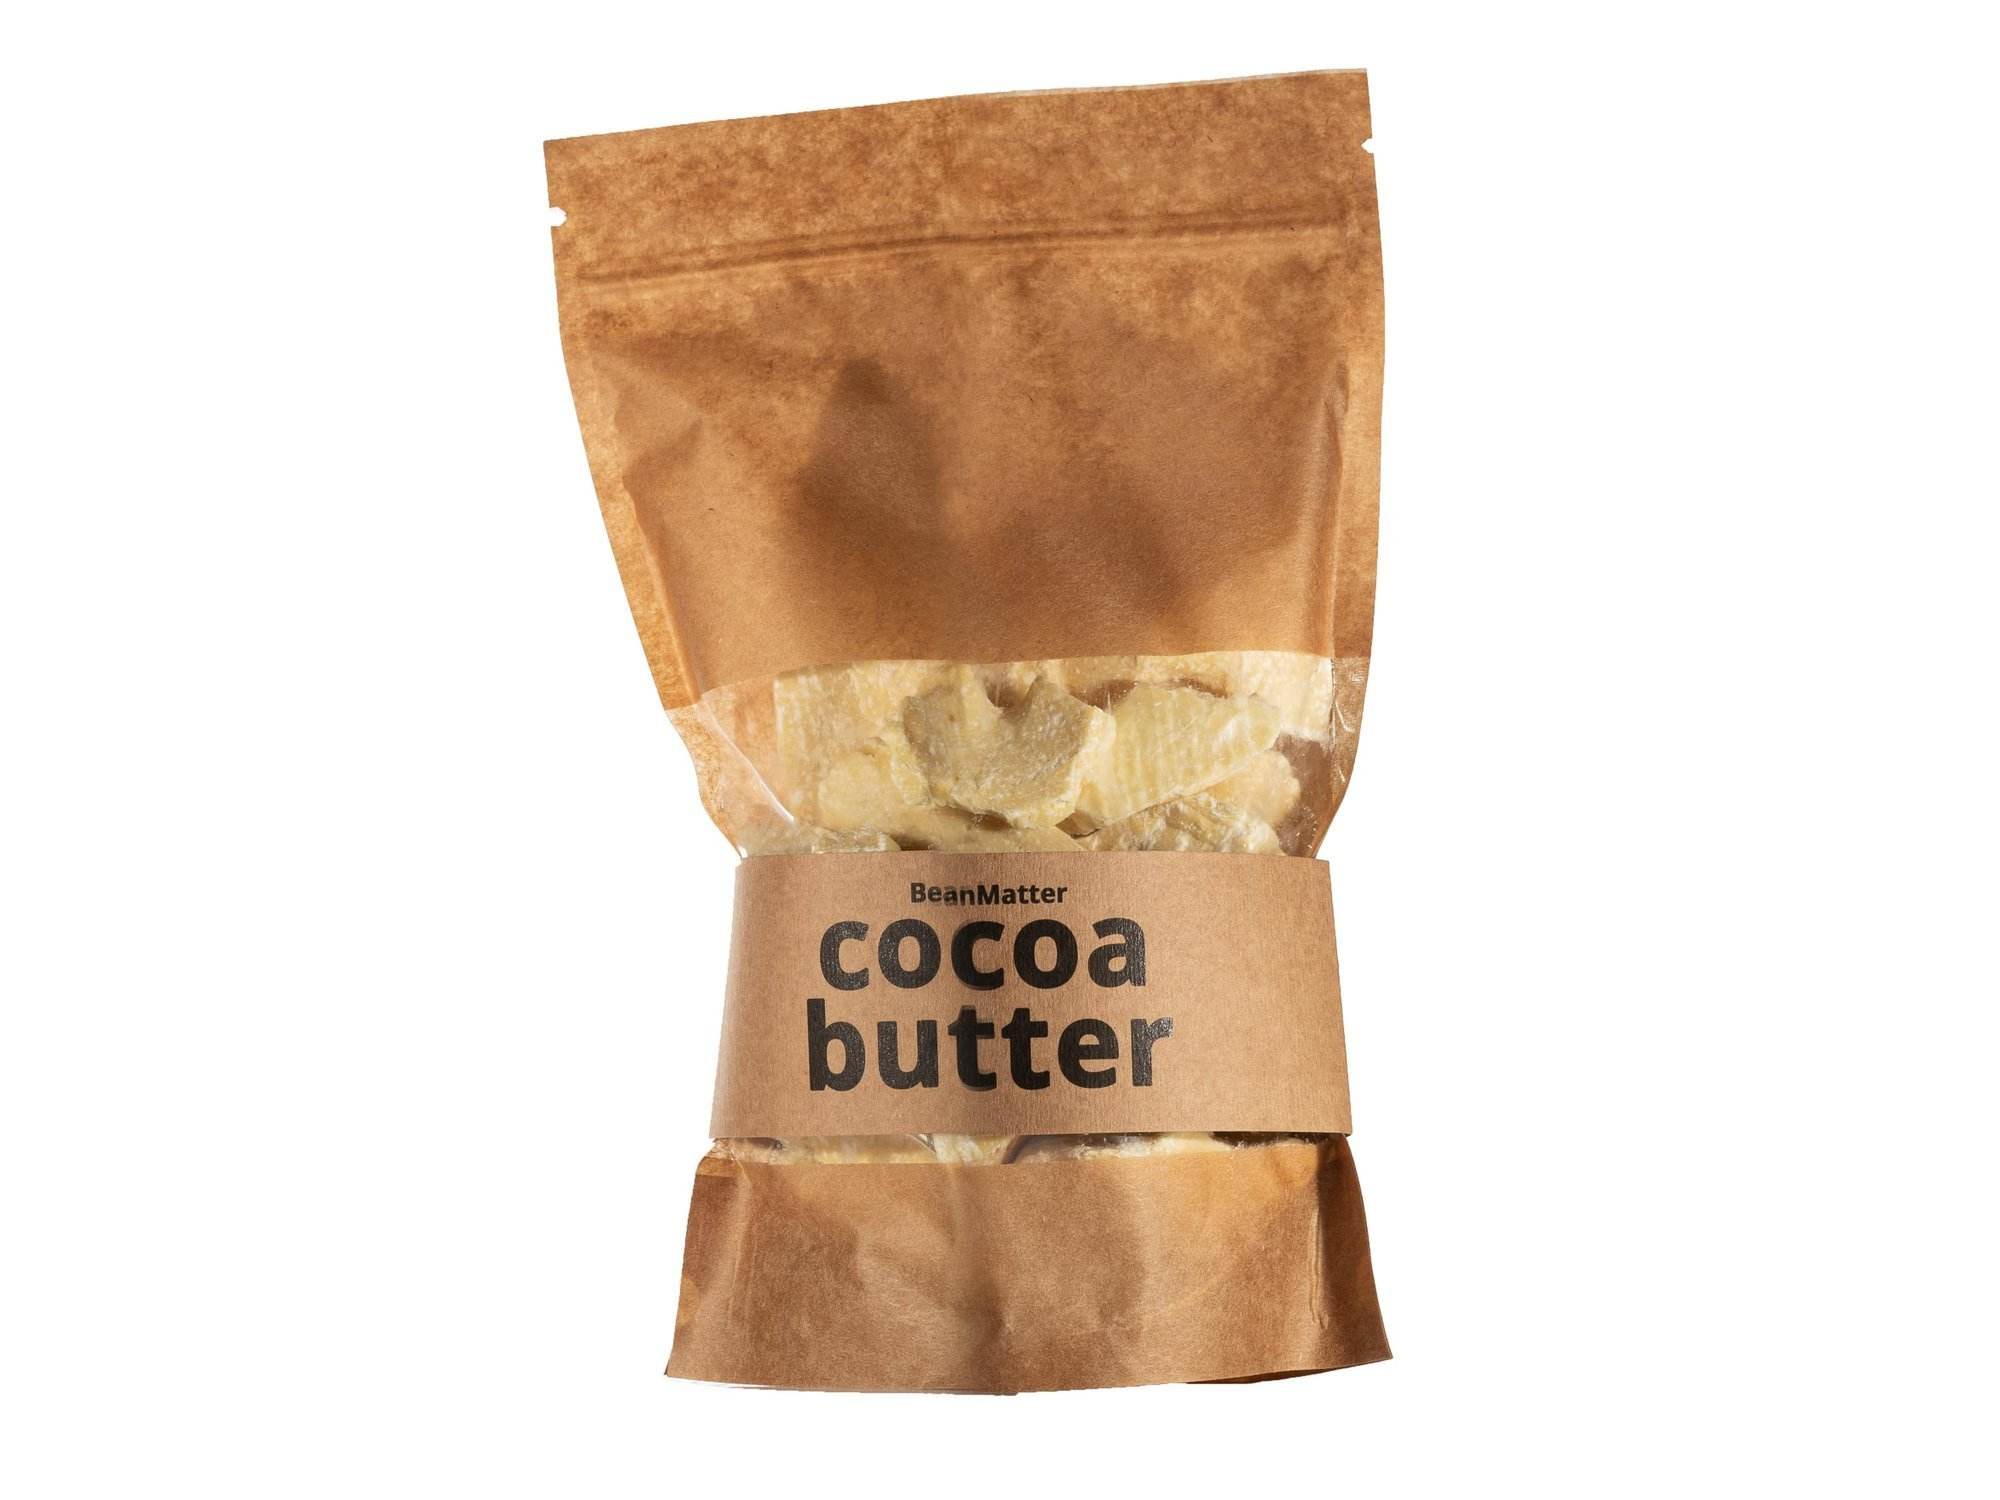 Cocoa Butter - 500g - Natural Unrefined Cacao Butter Ecuador Food Grade